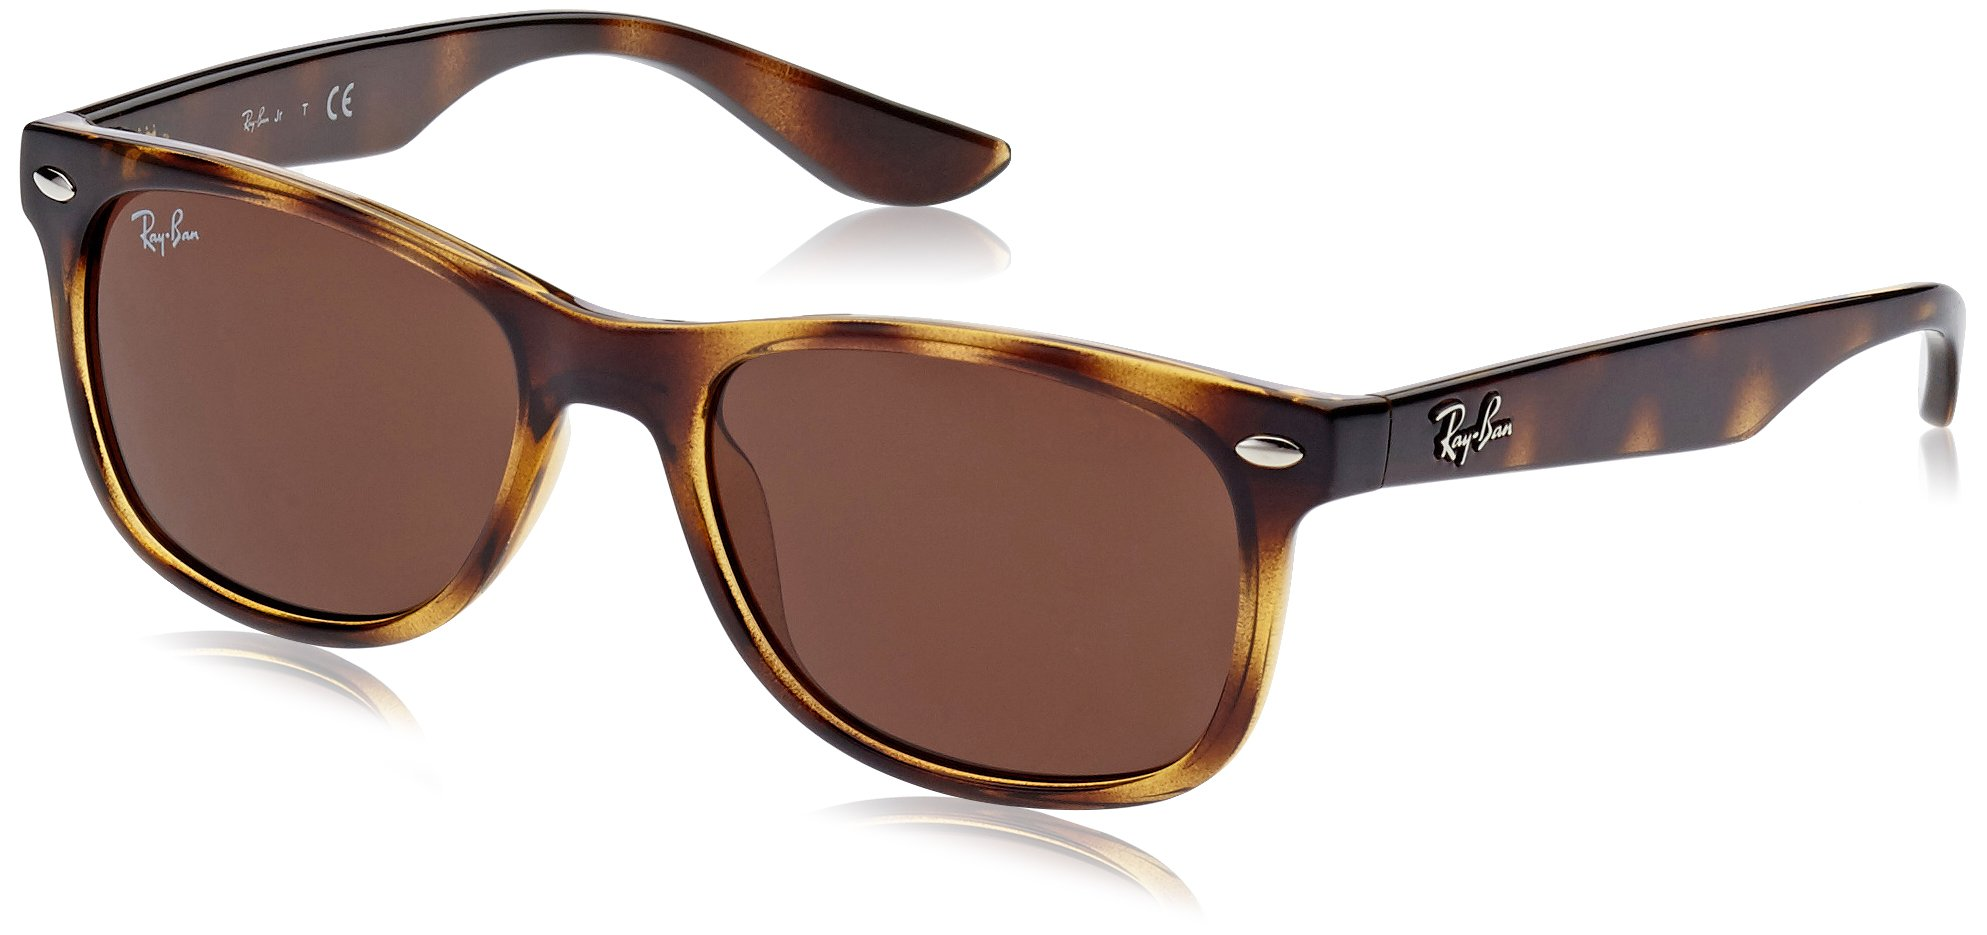 RAY-BAN JUNIOR Kids' RJ9052S New Wayfarer Kids Sunglasses, Havana/Brown, 48 mm by RAY-BAN JUNIOR